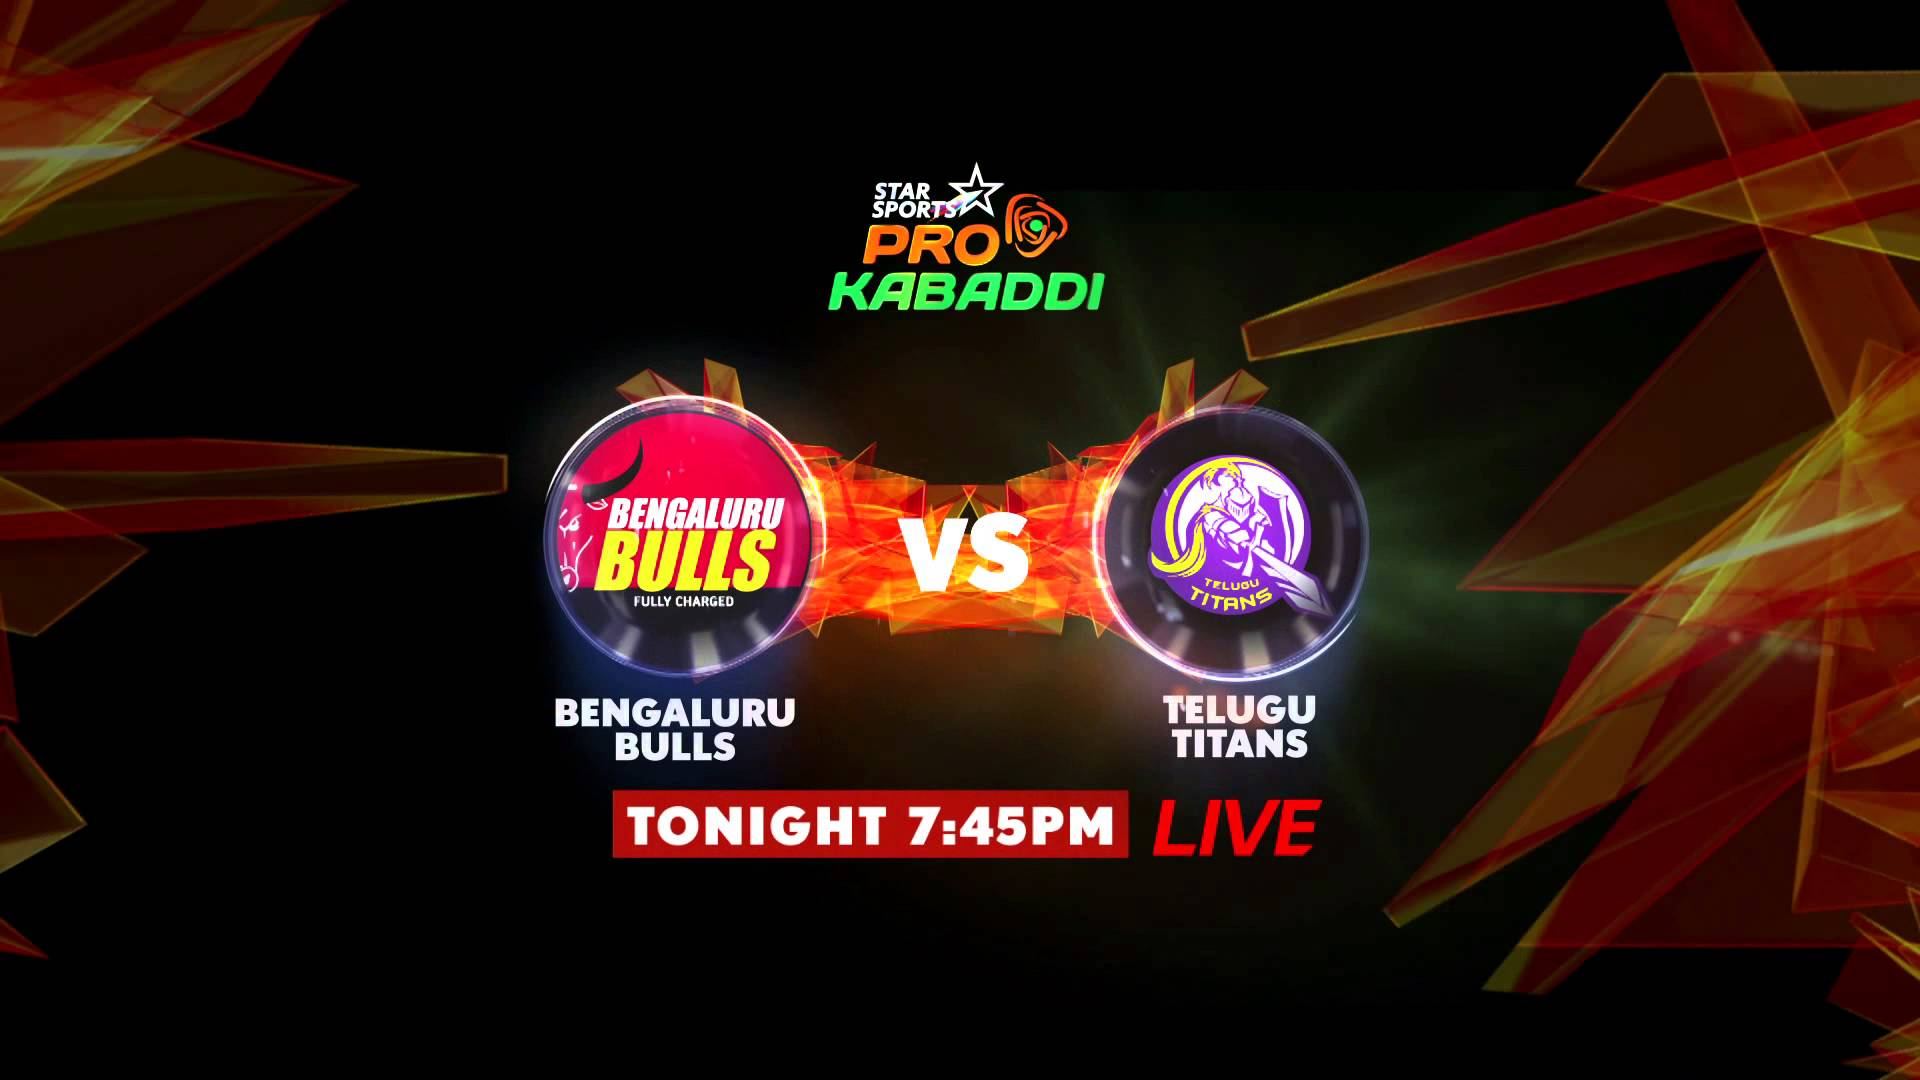 Big Event Telugu Titans vs Bengaluru Bulls Semi Final Pro kabaddi League Live Streaming PKL Result Score Prediction